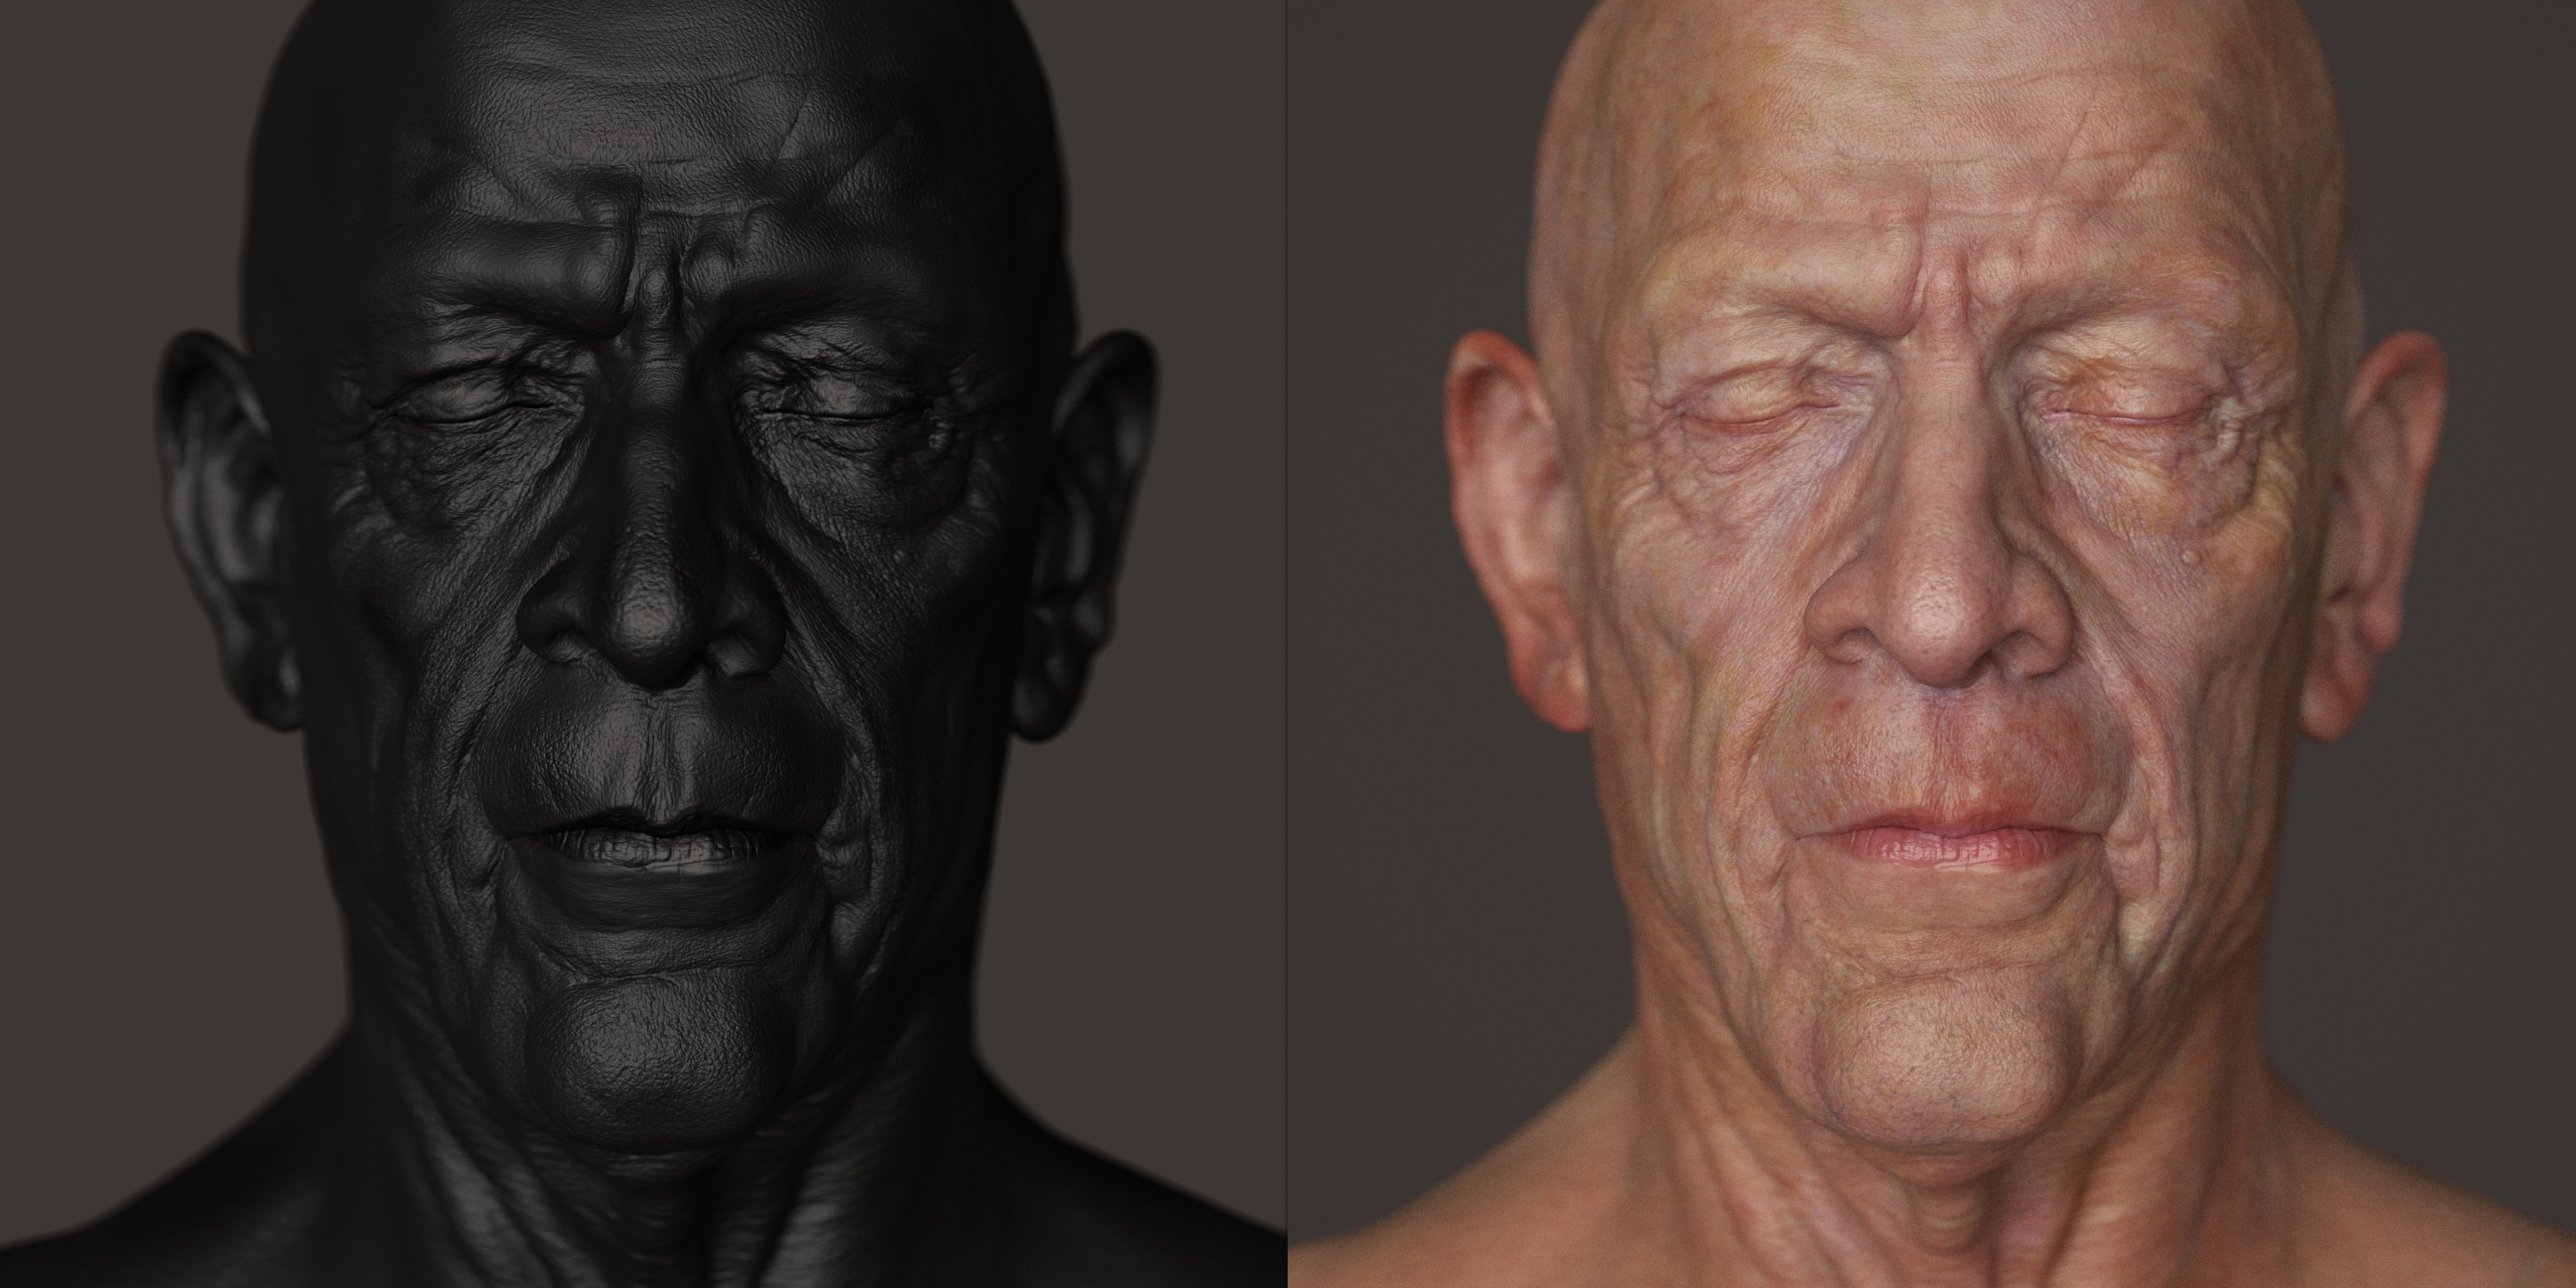 displacement map and skin shader tests